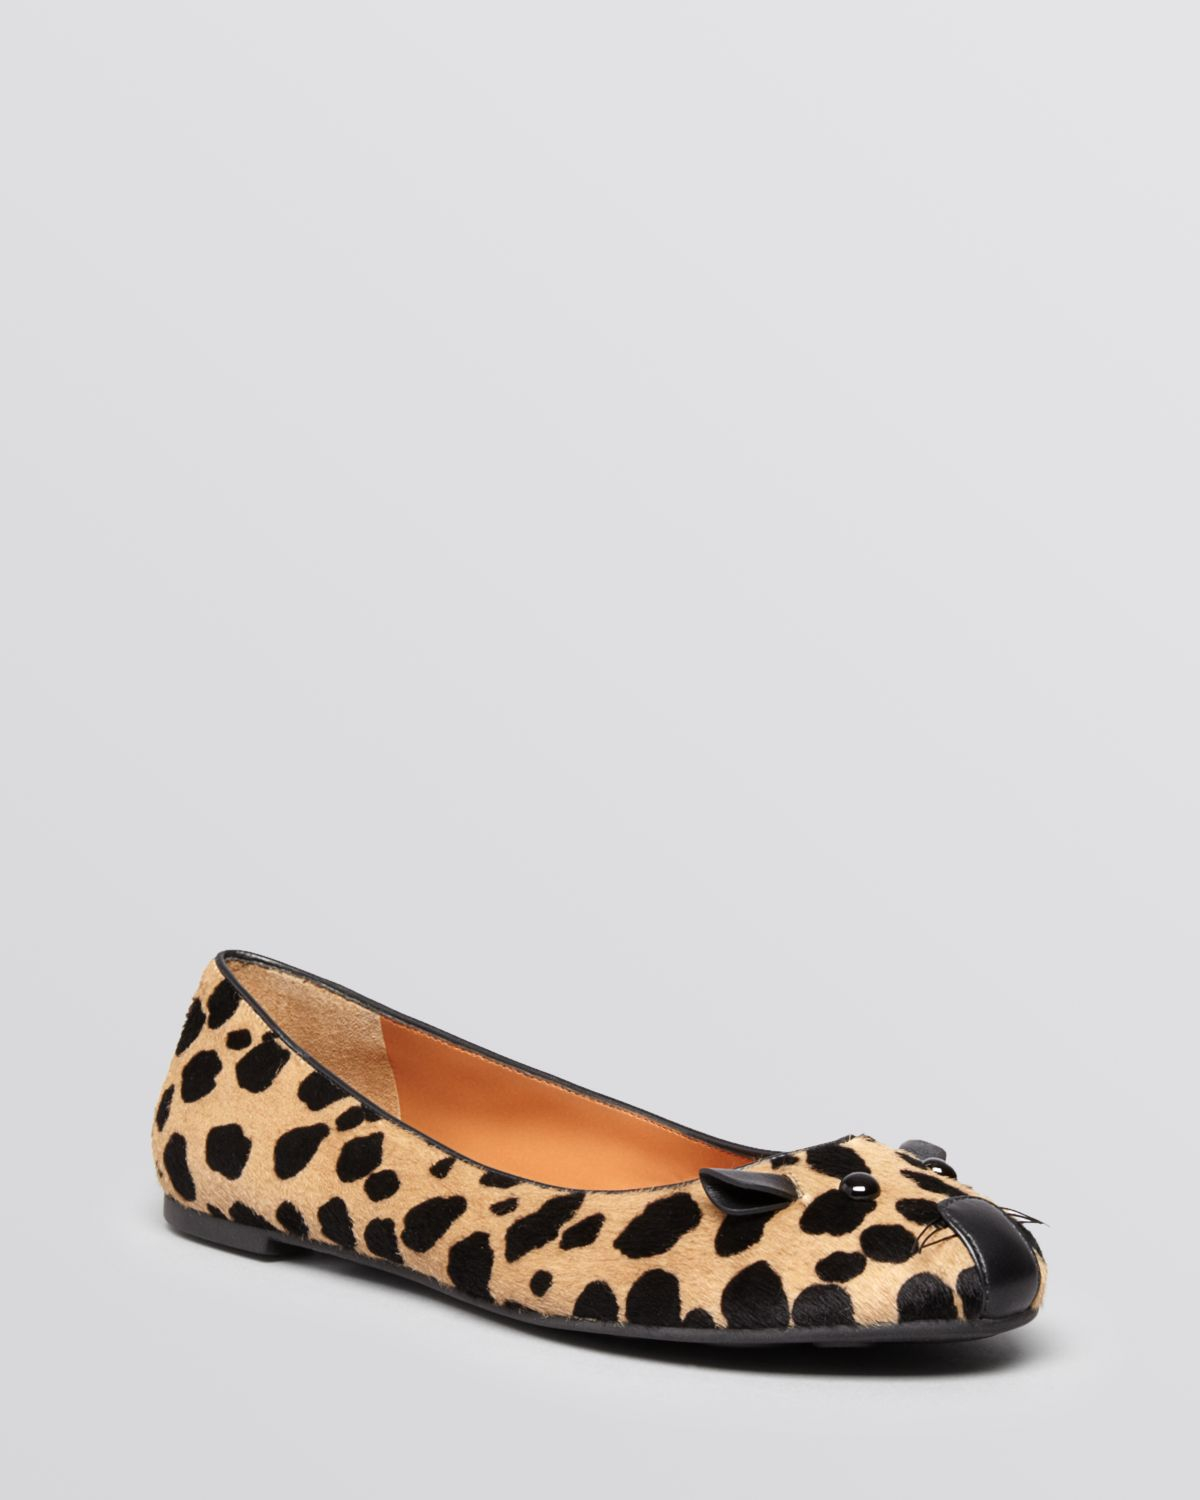 Discover the Felicia Ballet Flat and other Flats by Sam Edelman. Shop the latest styles in shoes, apparel & more online now.